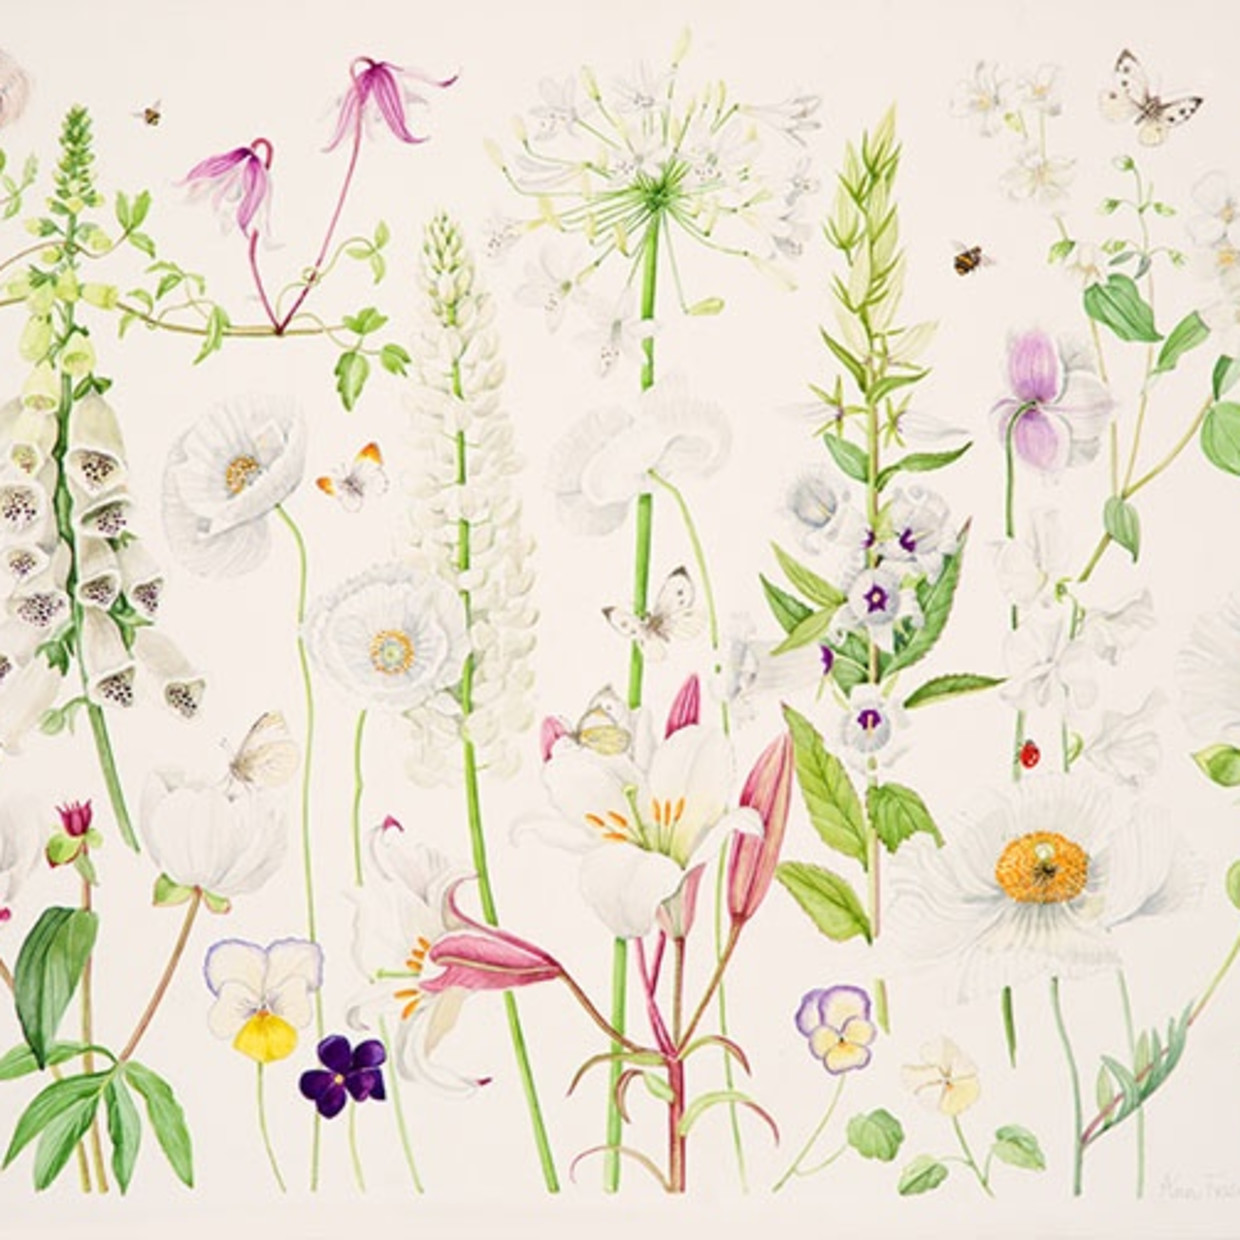 Ann Fraser: Art is the Flower - Life is the Green Leaf Petworth 7 - 18 May, London 21 - 23 May